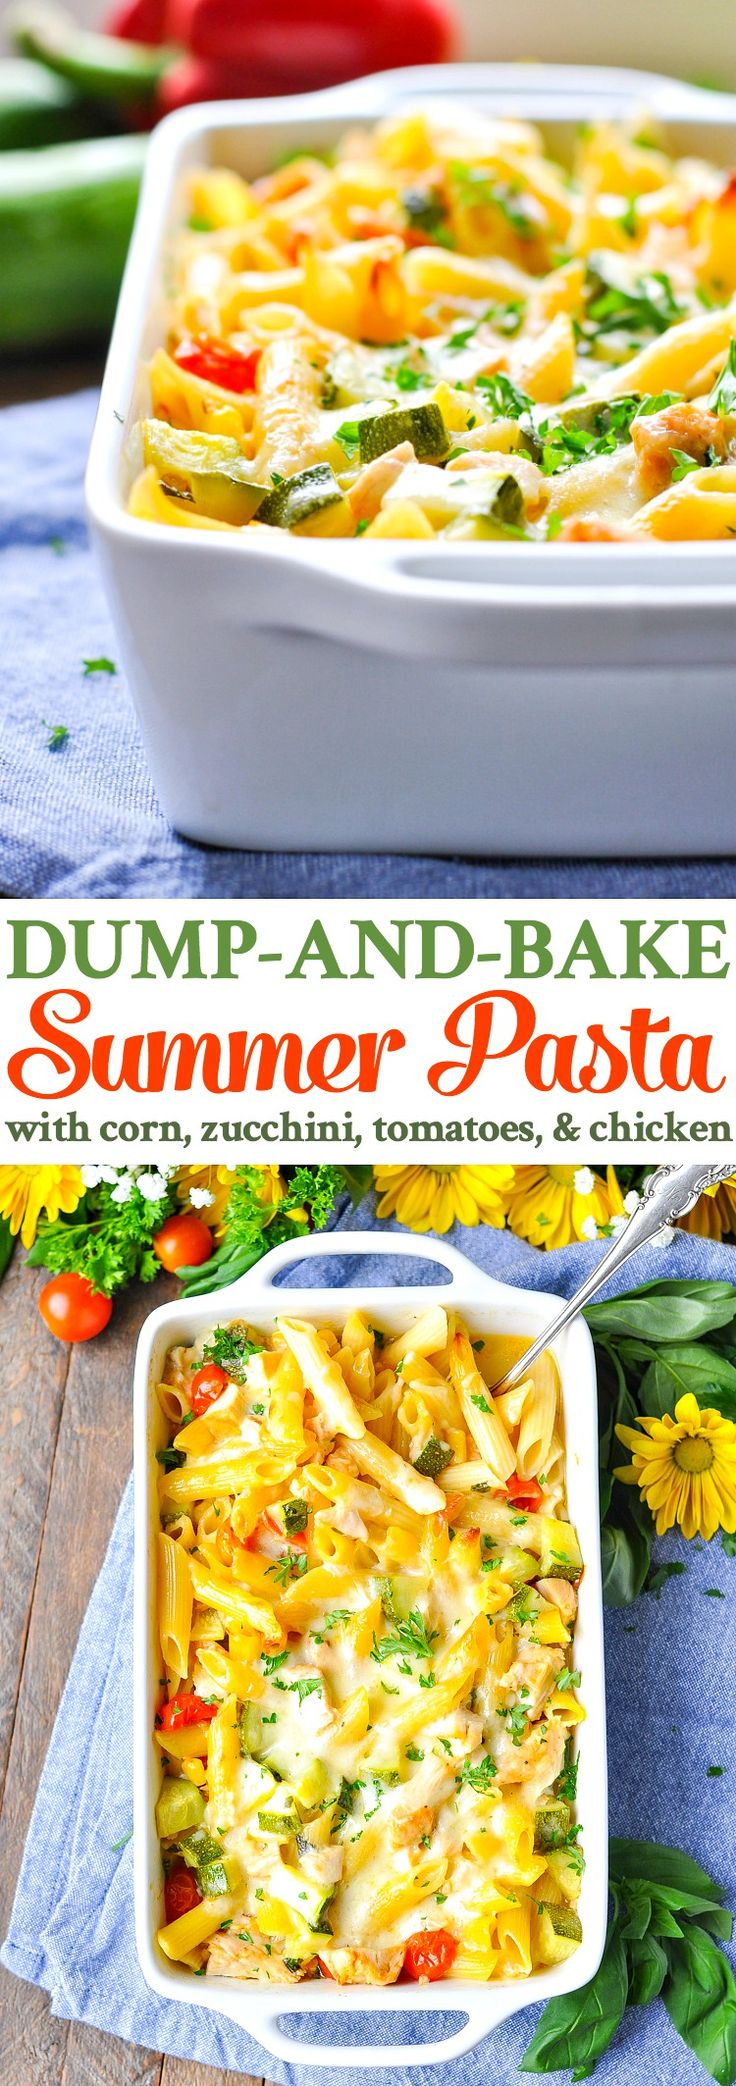 Dump-and-Bake Summer Pasta with Corn, Zucchini, Tomatoes, and Chicken! Easy Dinner Recipes | Healthy Dinner Recipes | Casserole Recipes | Pasta Recipes | Chicken Breast Recipes | Easy Chicken Recipes | One Dish Meals | Healthy Recipes | Dinner Ideas | Zucchini Recipes | Tomato Recipes | Corn Recipes